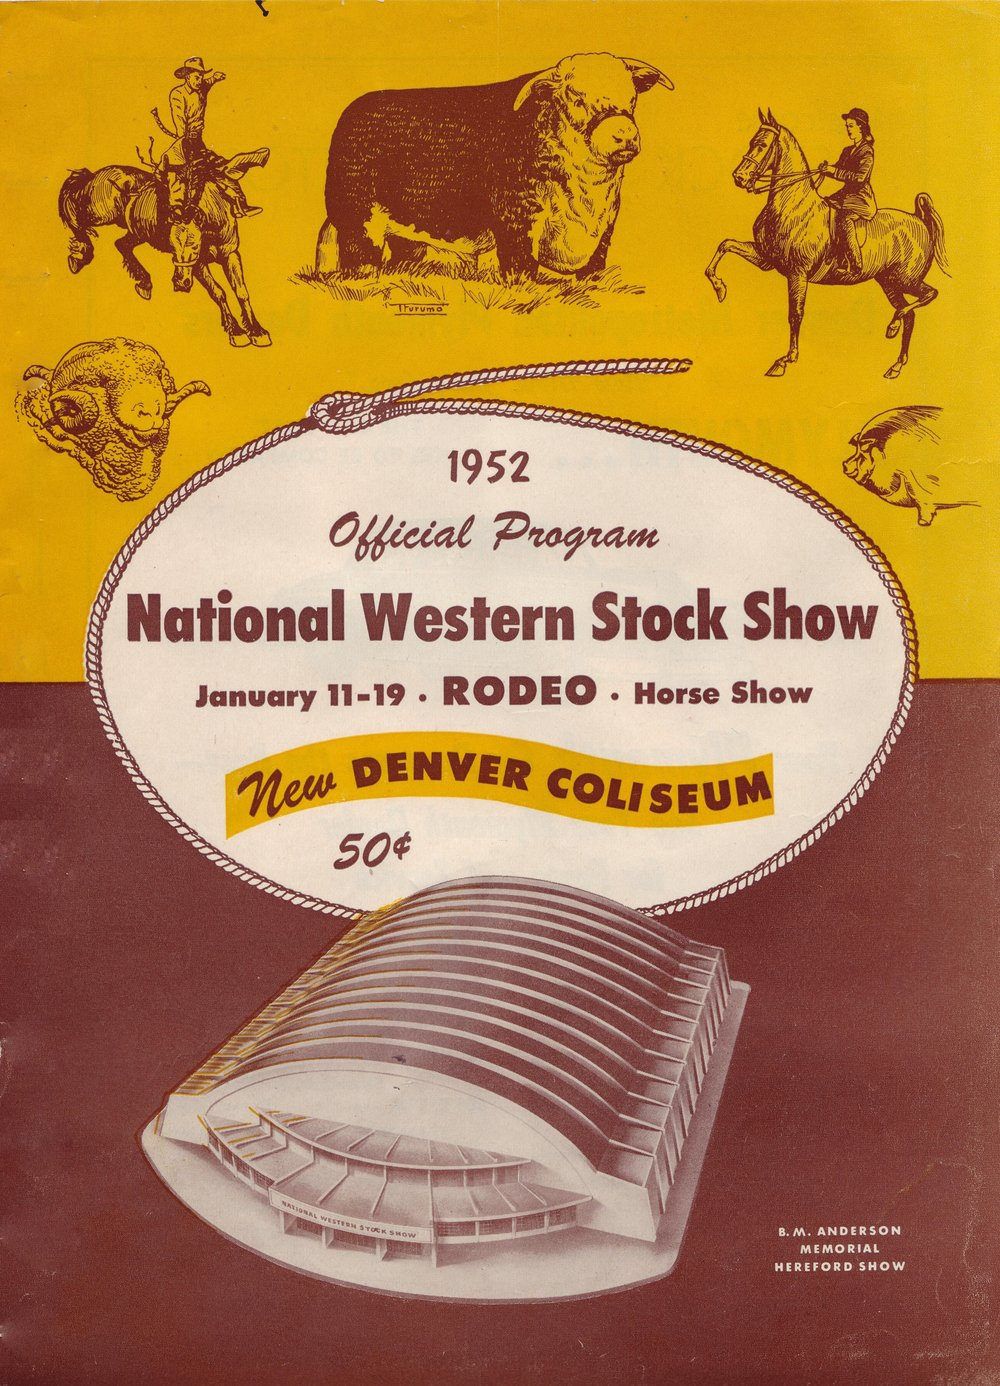 The program cover for the 1952 National Western Stock Show and Rodeo